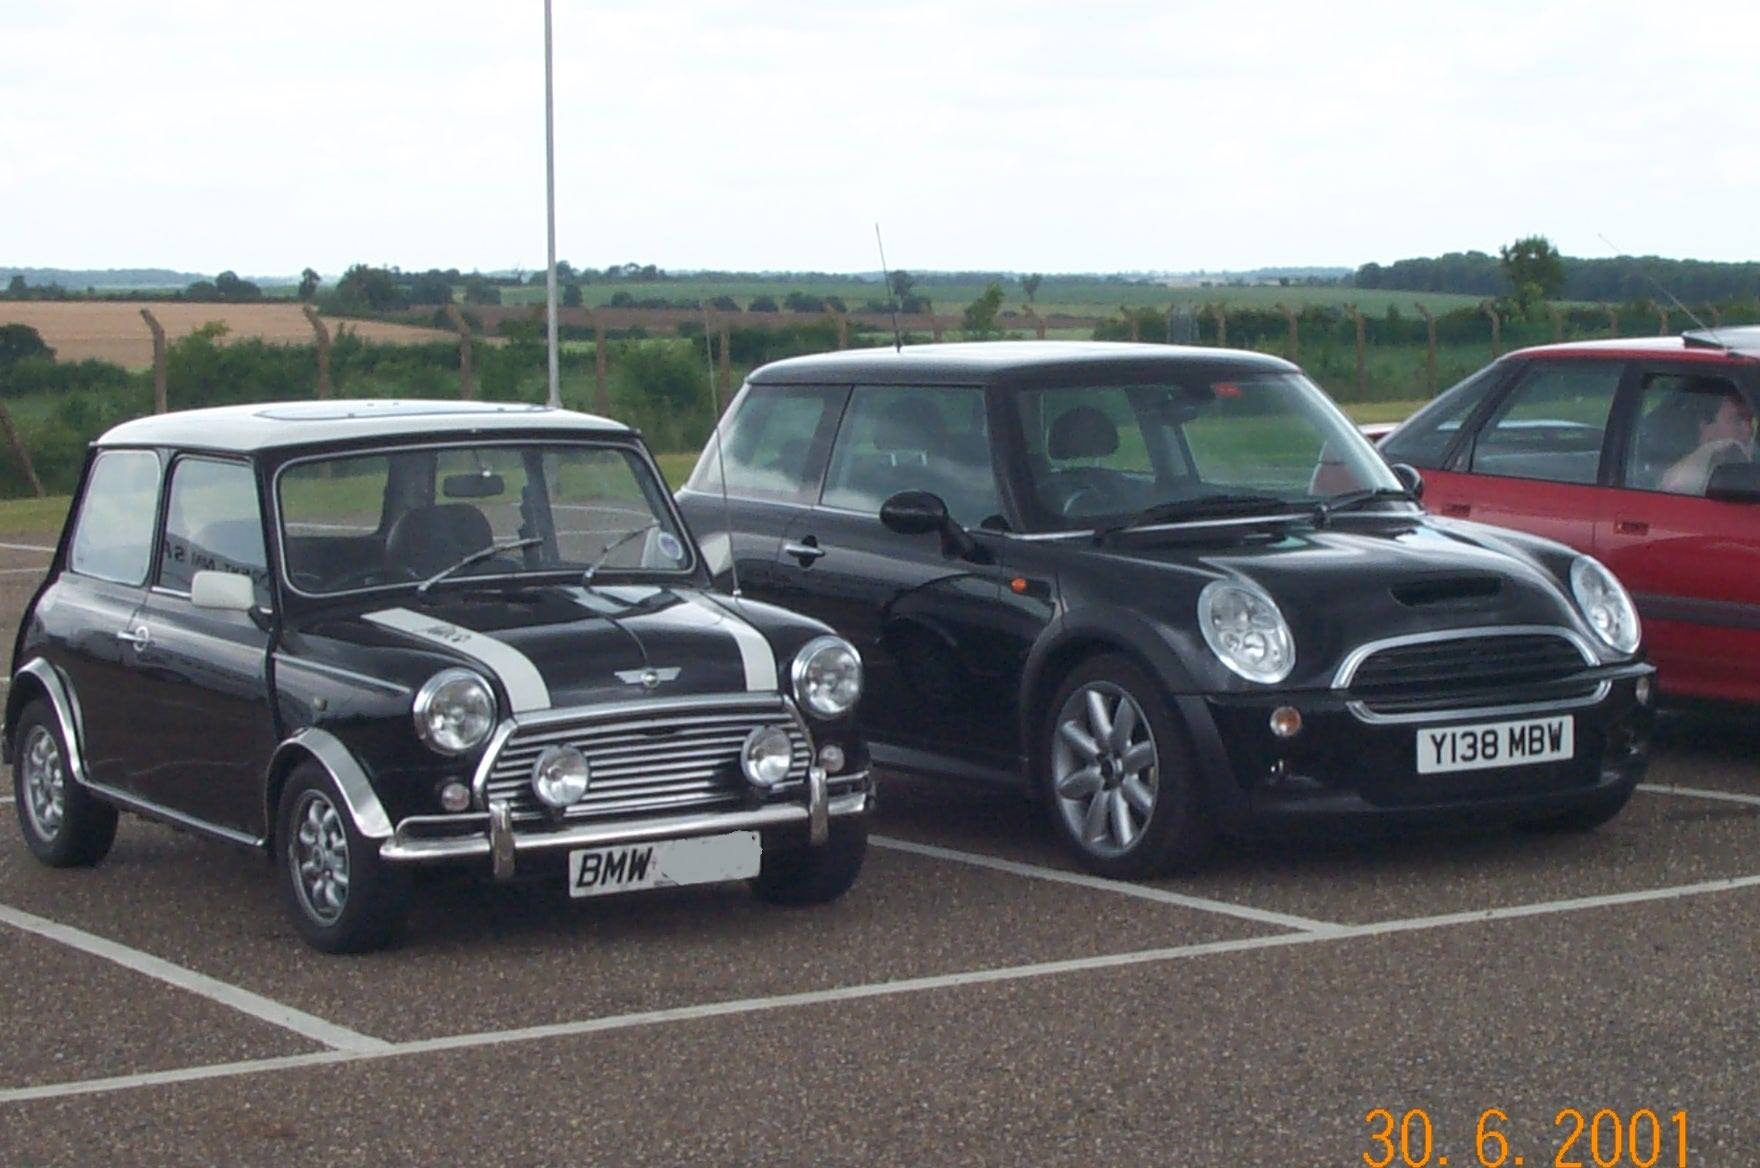 Early MINI Cooper S R53 Prototype registered on a Y plate